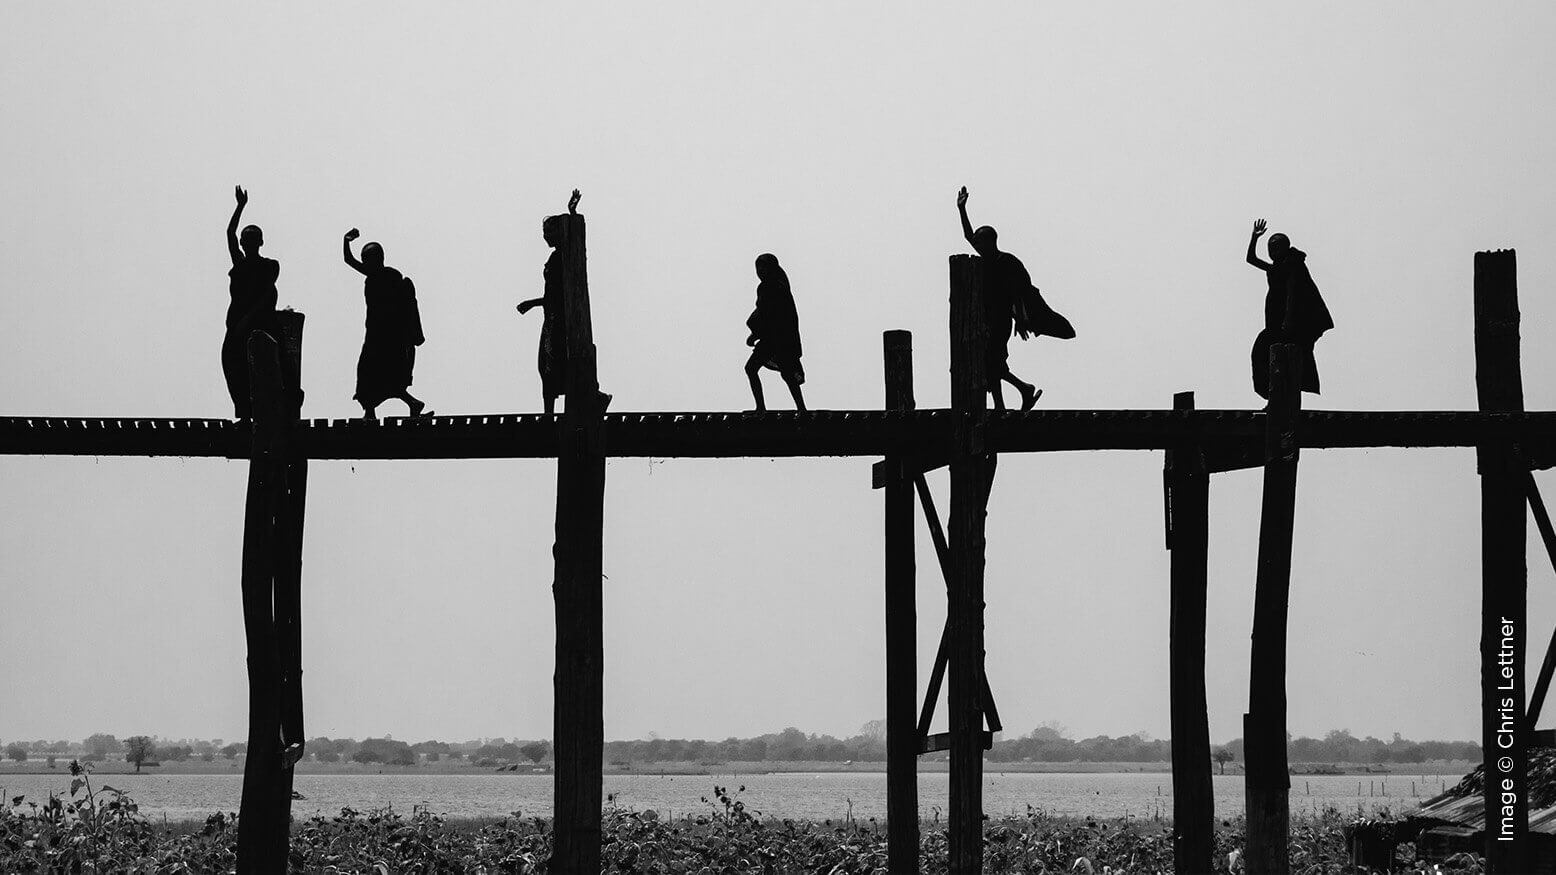 Documentary Photography: The Art of Capturing the World in Black & White